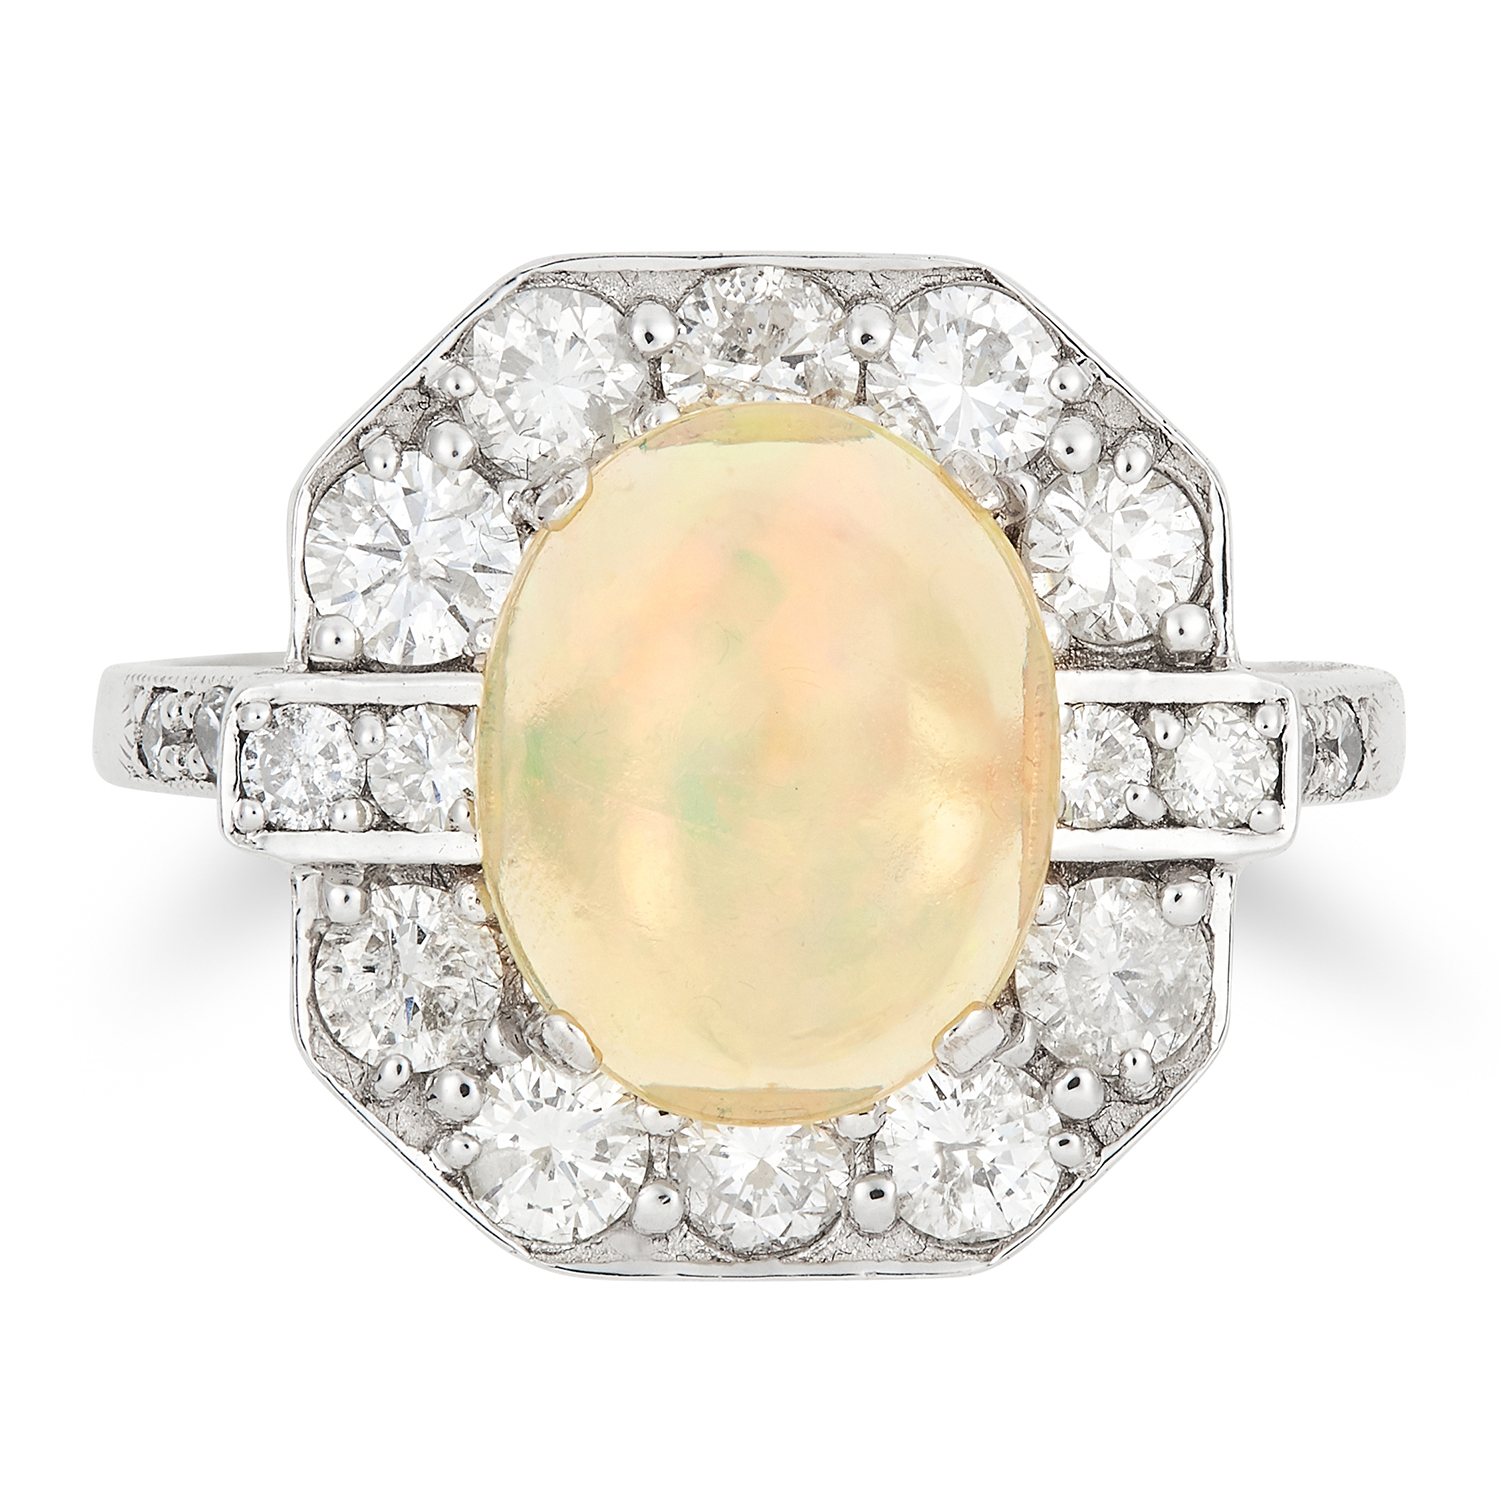 Los 55 - OPAL AND DIAMOND RING in Art Deco style, set with a cabochon opal in a border of round cut